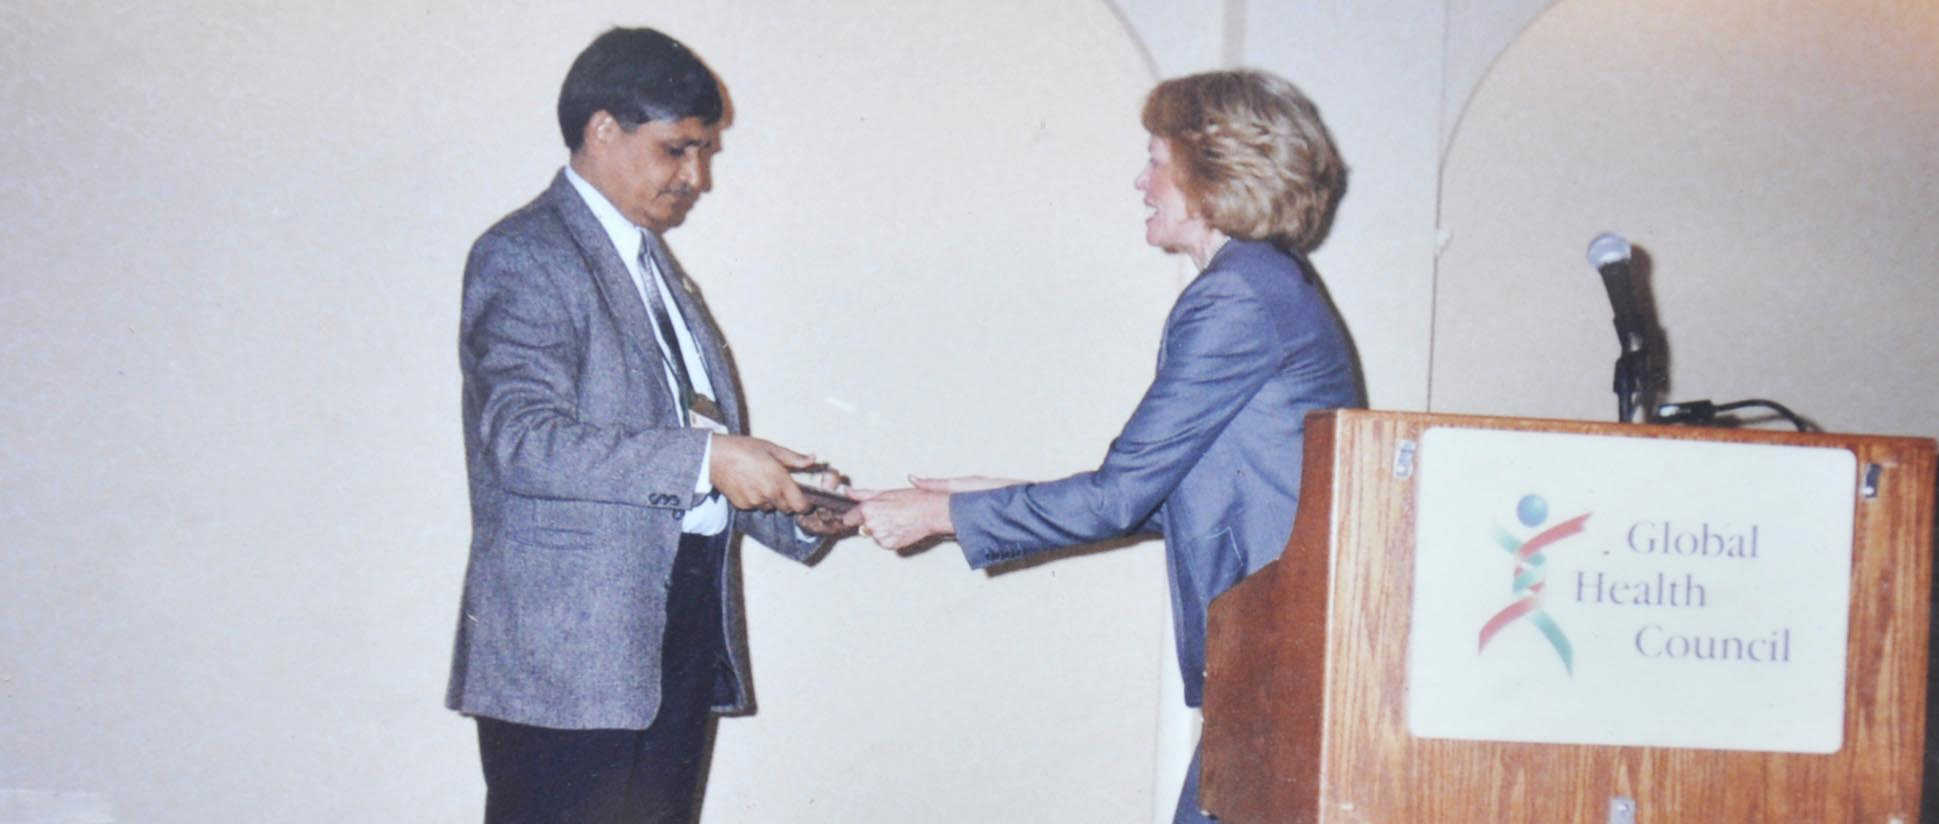 Dr BS Garg awarded Safe Motherhood Award in 1995 at Washington